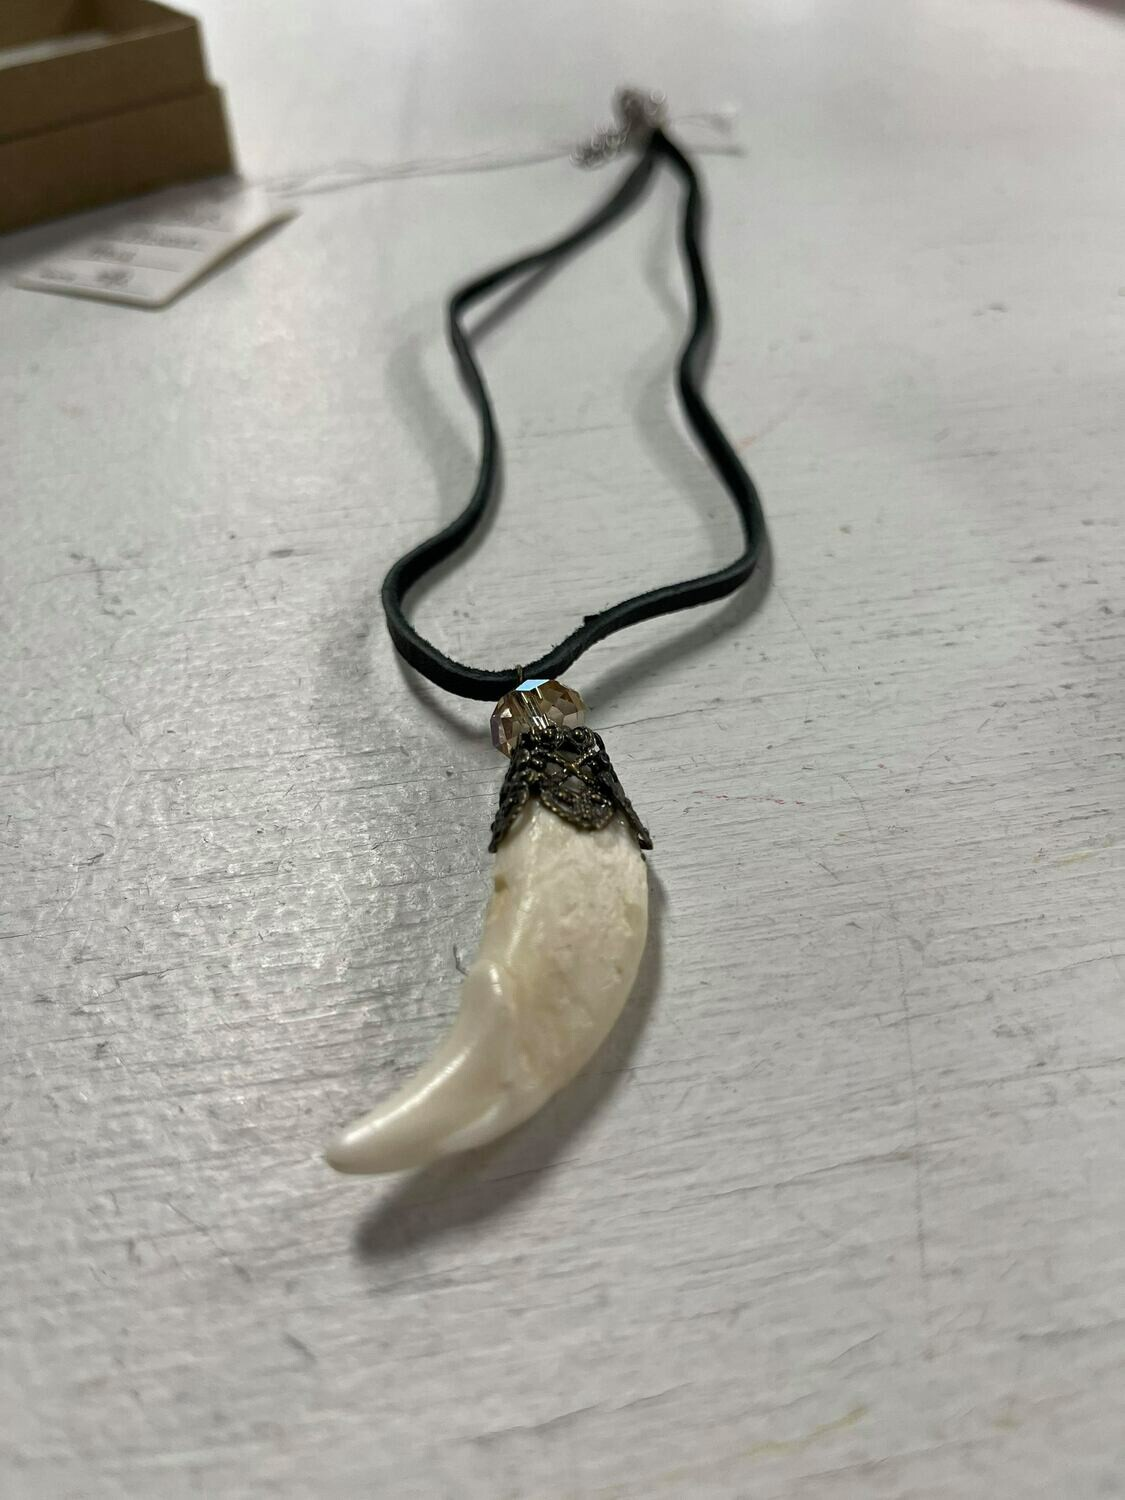 Unclaimed Item #11 - Basset Hound Tooth Necklace